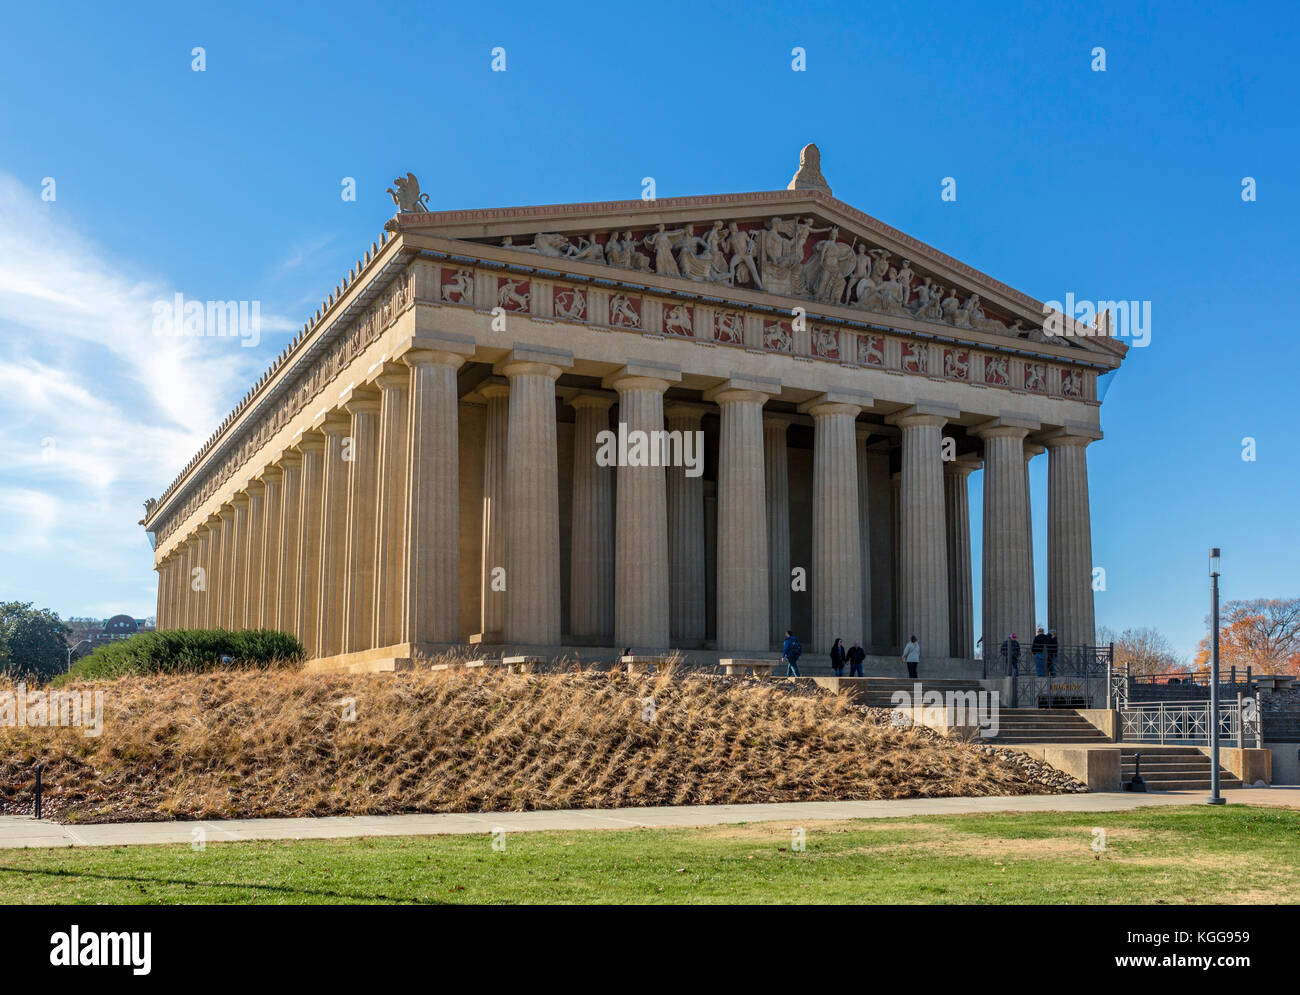 Parthenon, Centennial Park, Nashville,Tennessee, USA. The Parthenon was built in 1897 for the Tennessee Centennial - Stock Image